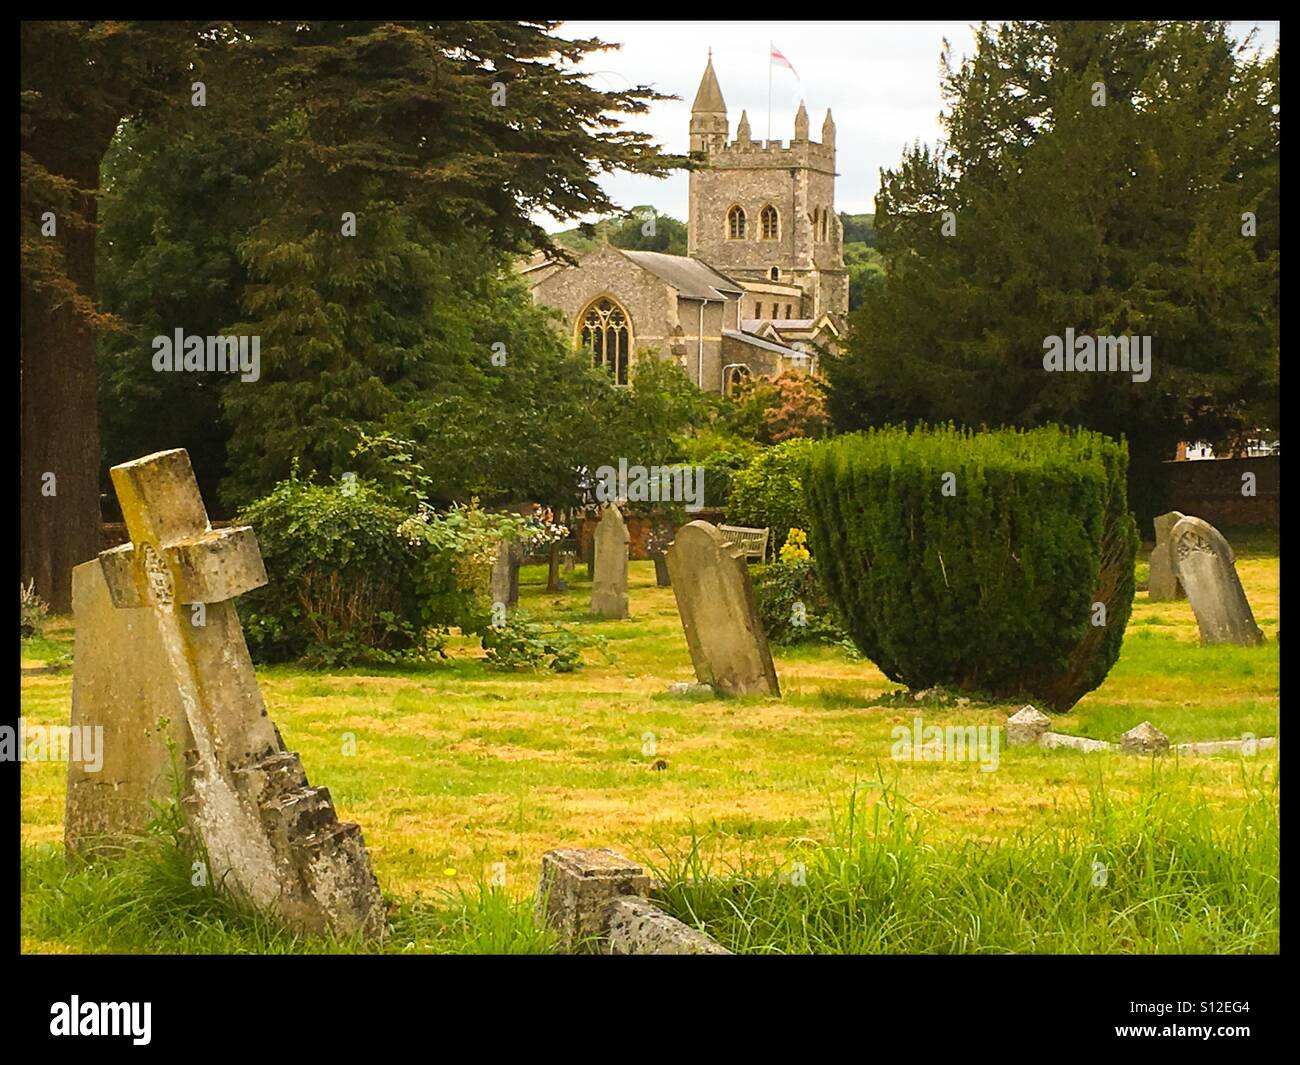 Church in Old Amersham, England. - Stock Image